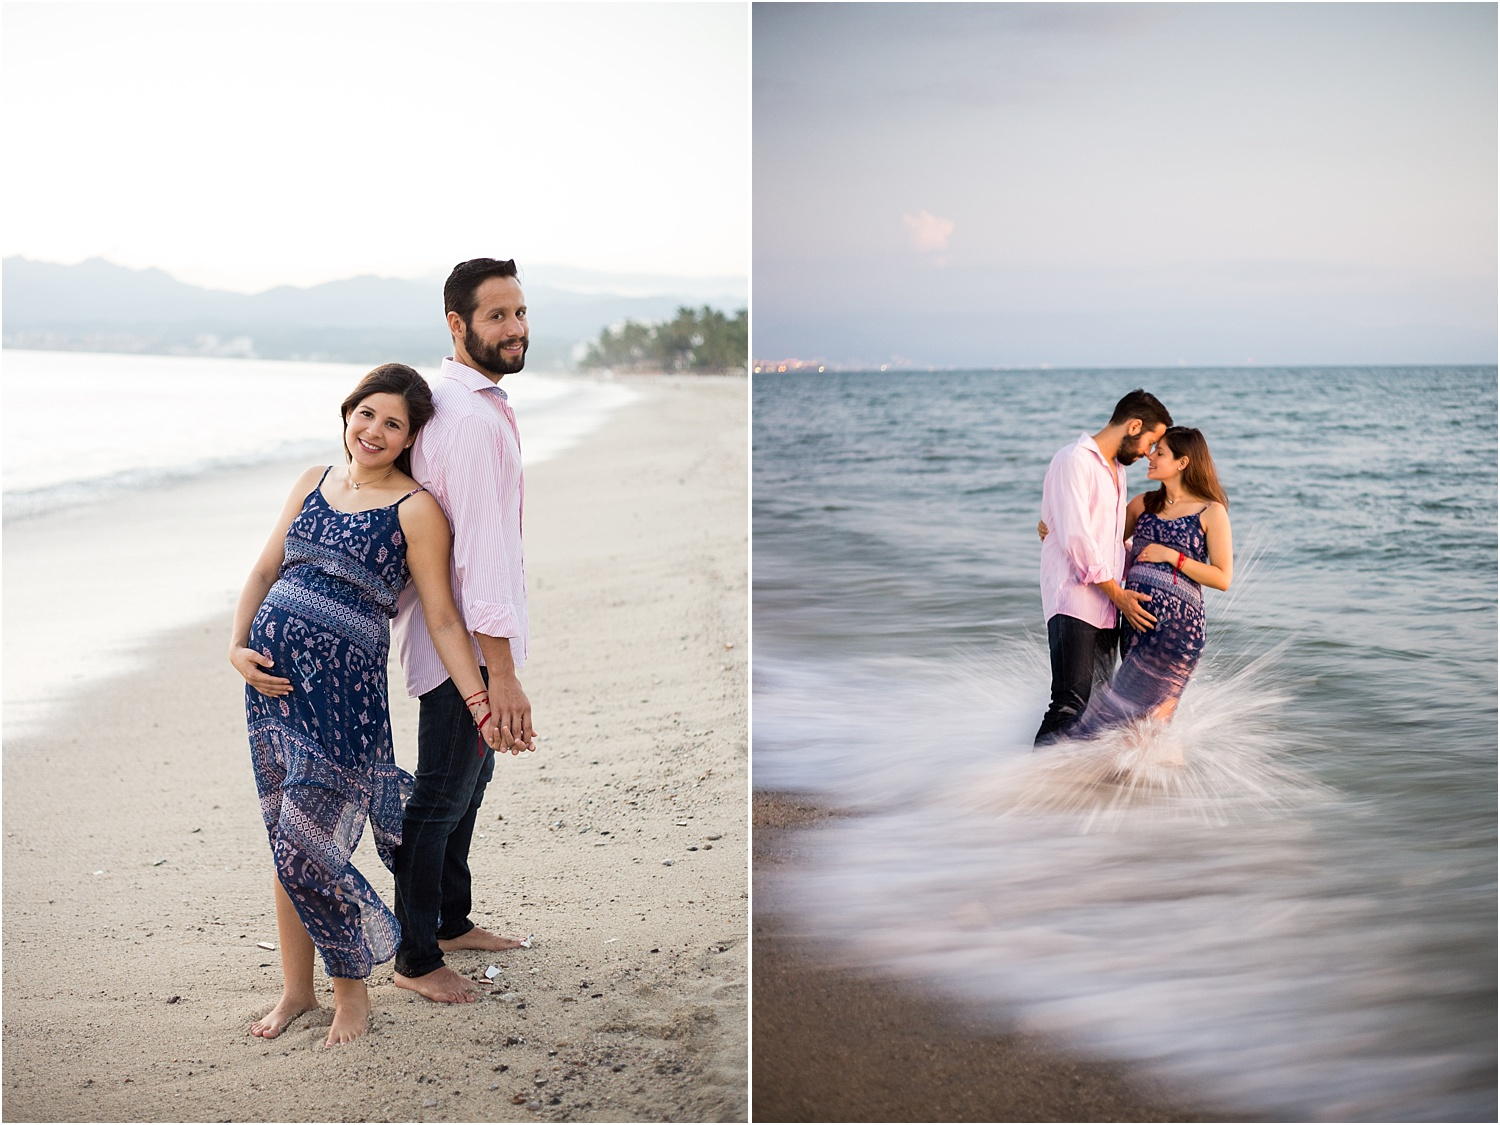 Maternity Session Tips For Better Client Experience 15